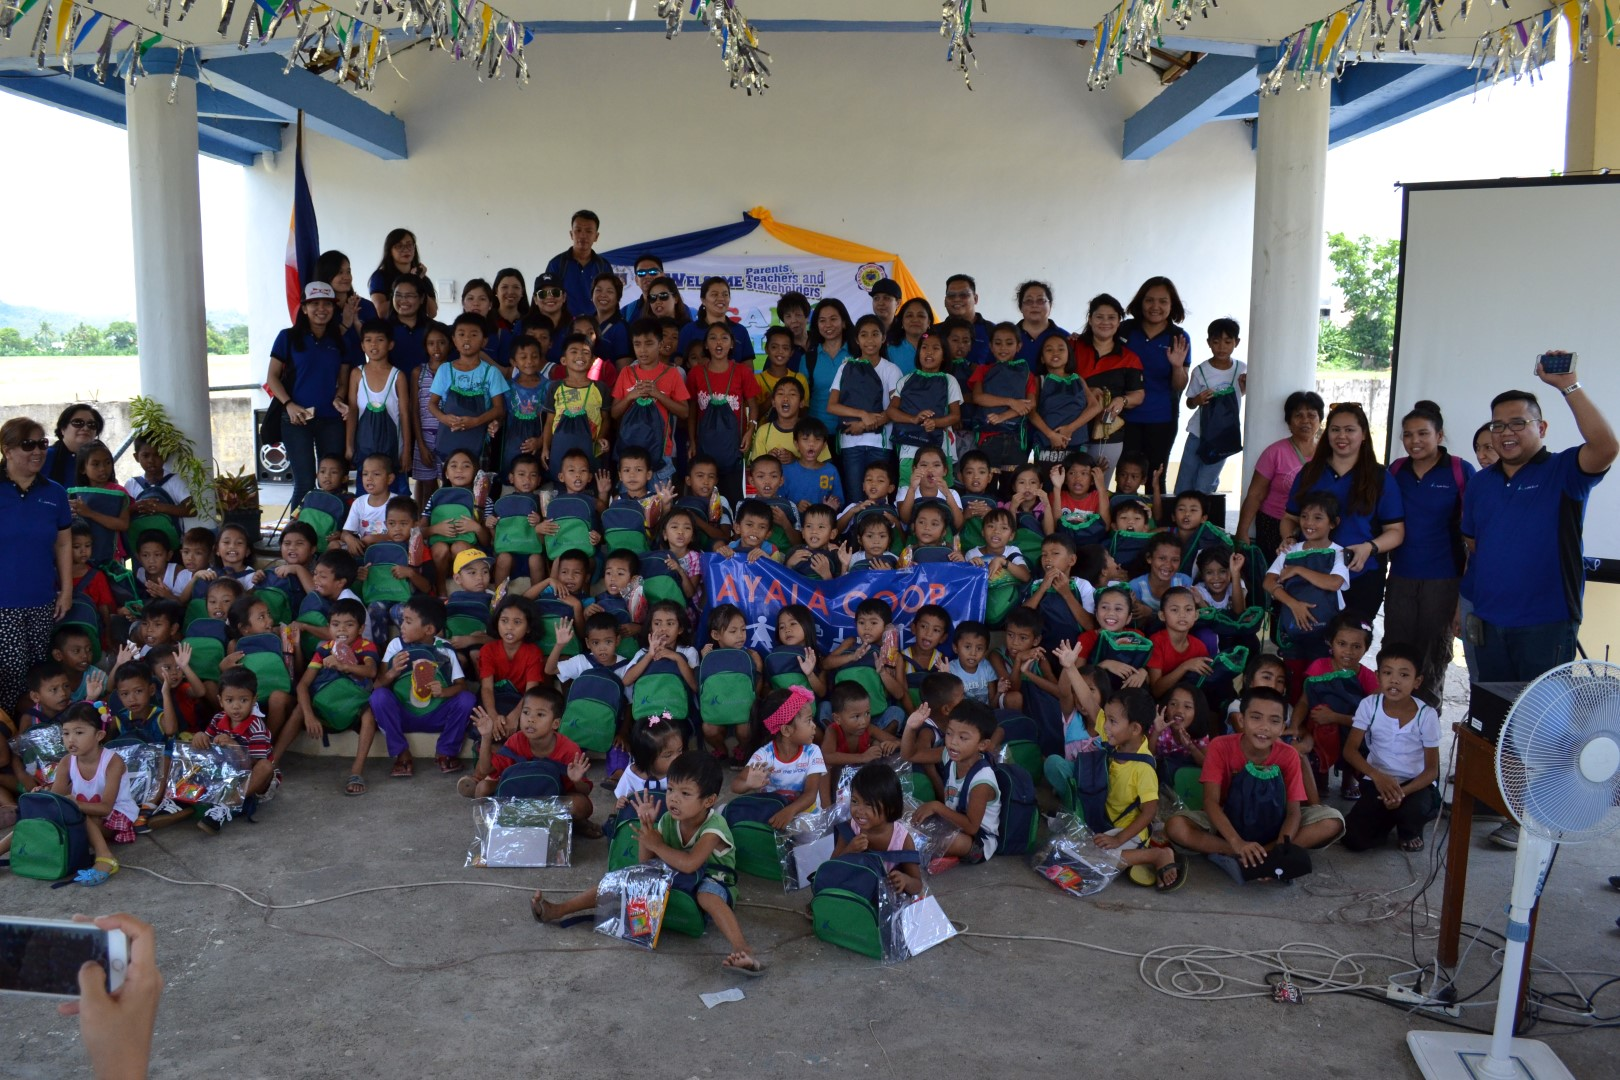 The team of volunteers from the Ayala Coop poses for posterity with the beneficiary pupils of the Brigada Eskwela 2017 project the Coop conducted in Ligao, Albay.